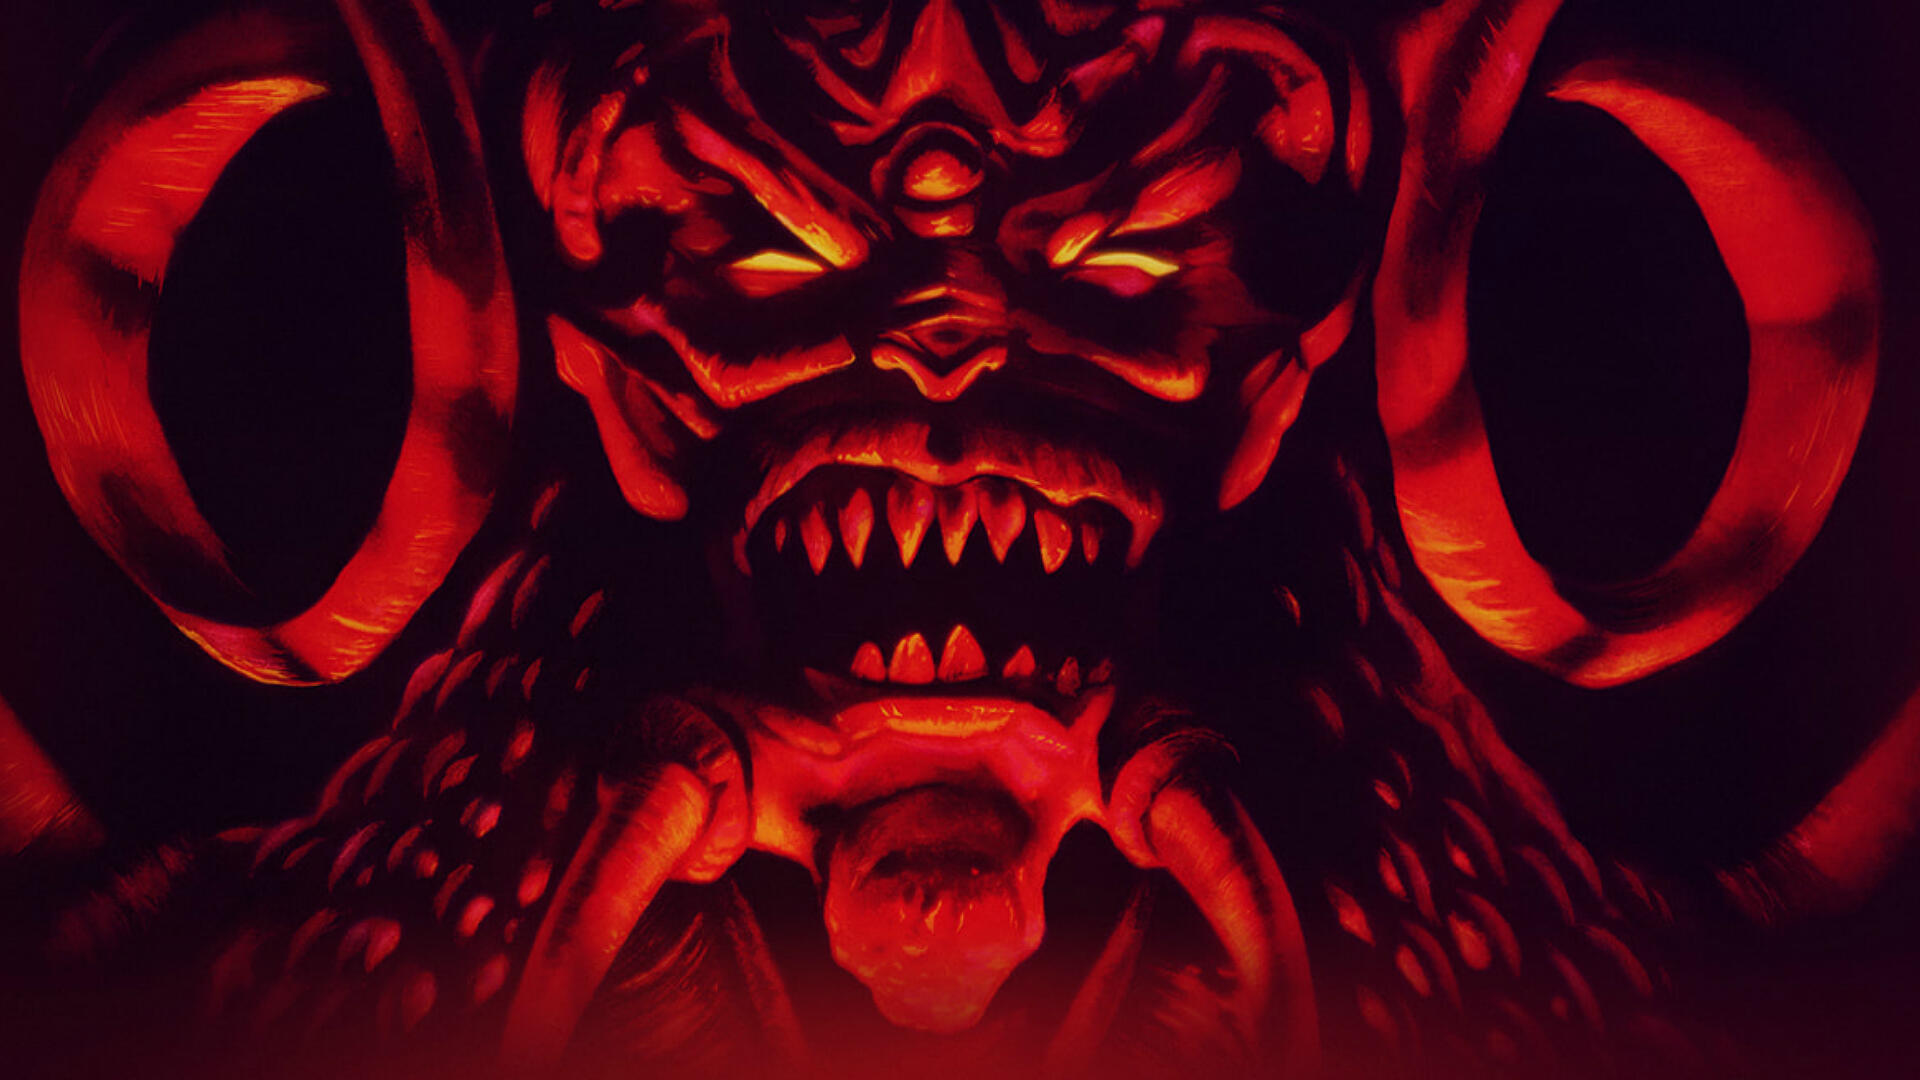 Diablo is Resurrected by GOG, With Warcraft Re-Releases in the Future